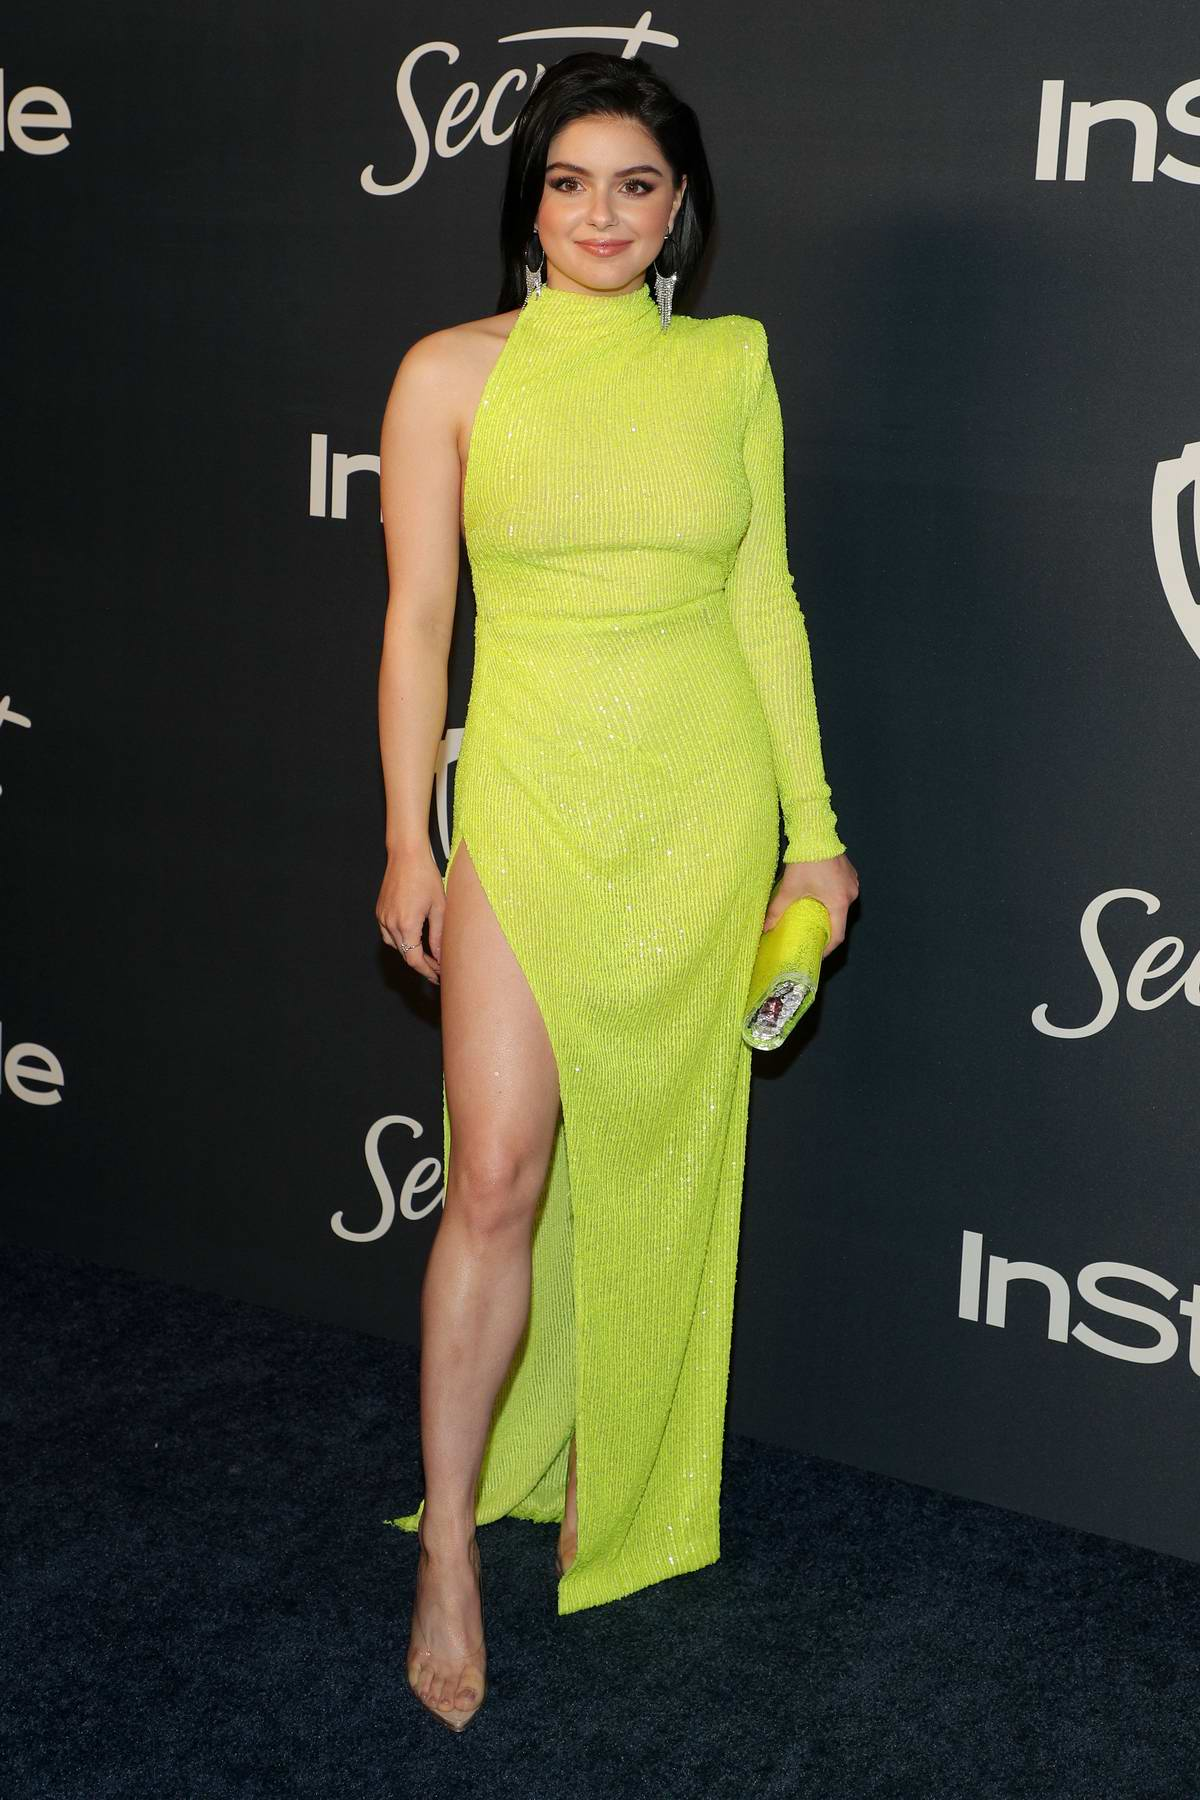 Ariel Winter attends the 21st annual Warner Bros and InStyle Golden Globe After-Party in Beverly Hills, California